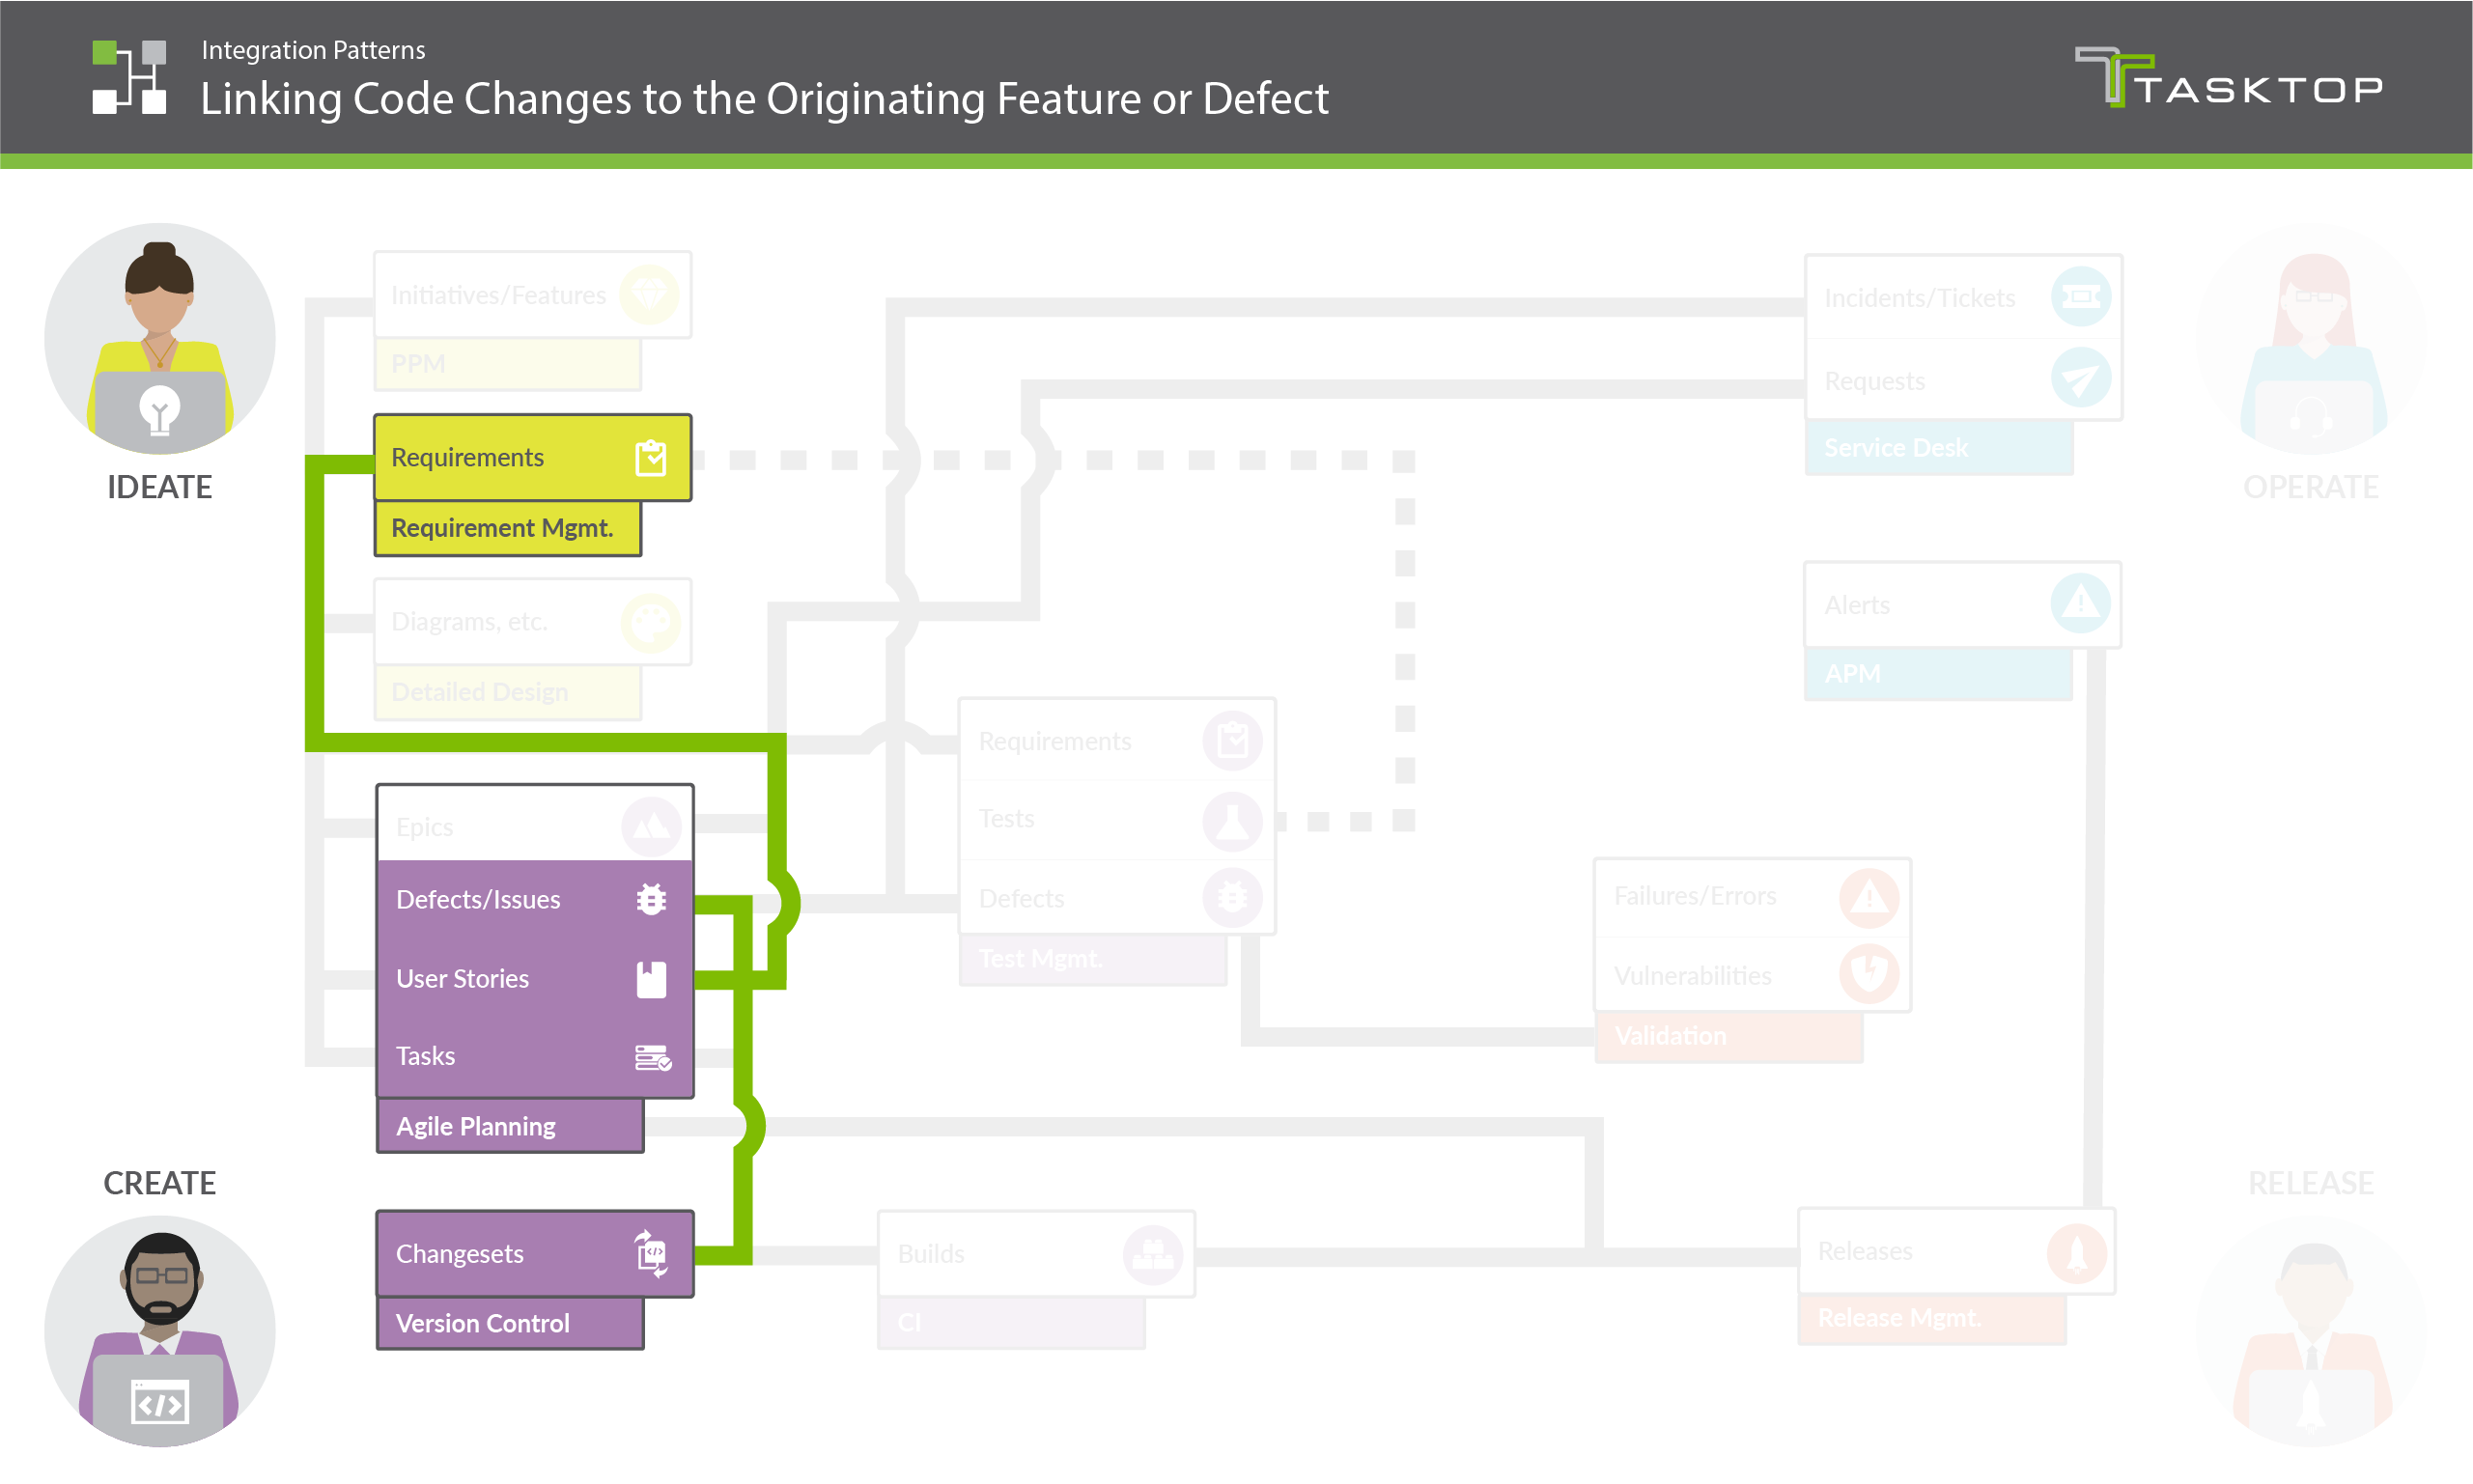 Integration Pattern Linking Code Changes to the Originating Feature or Defect